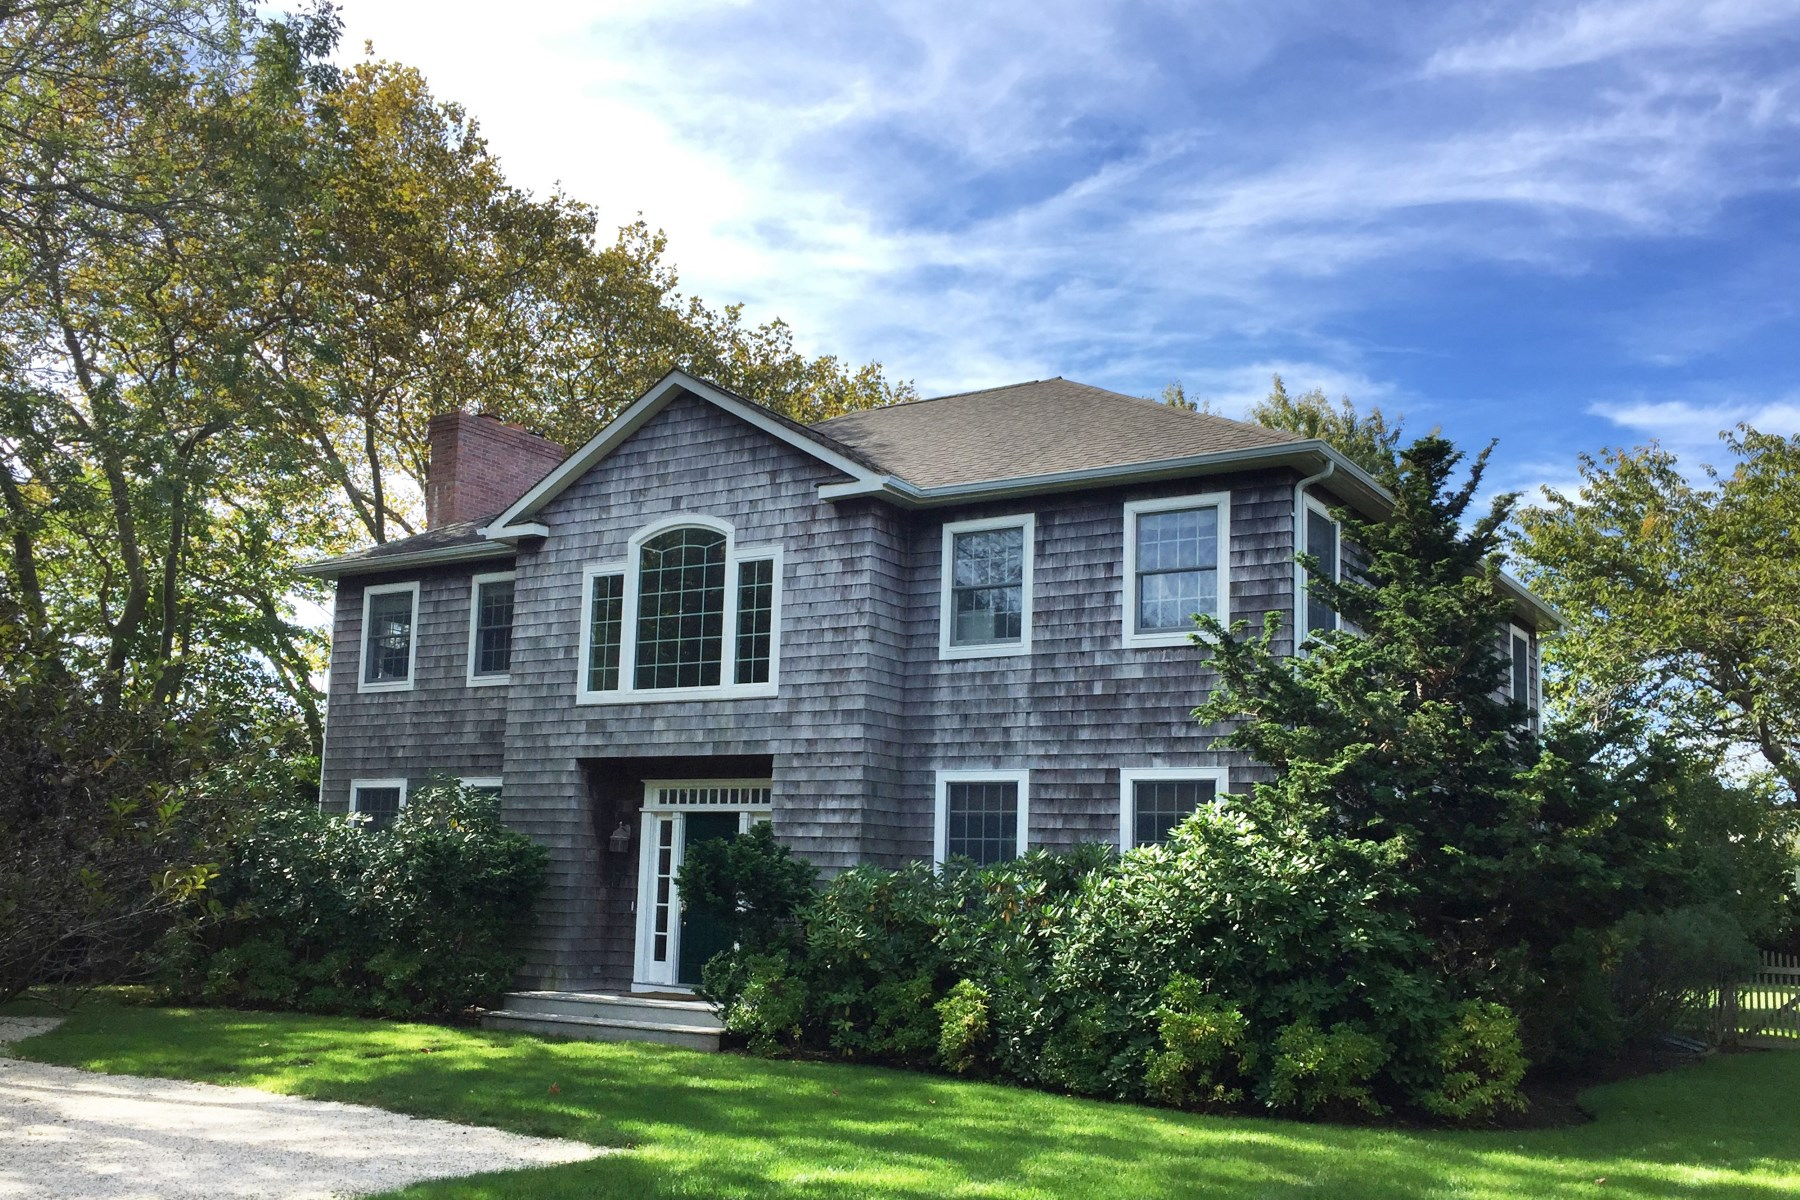 Multi-Family Home for Sale at Hedges Lane Compound - A Rare Offering 82, 86 And 90 Hedges Lane Amagansett, New York, 11930 United States